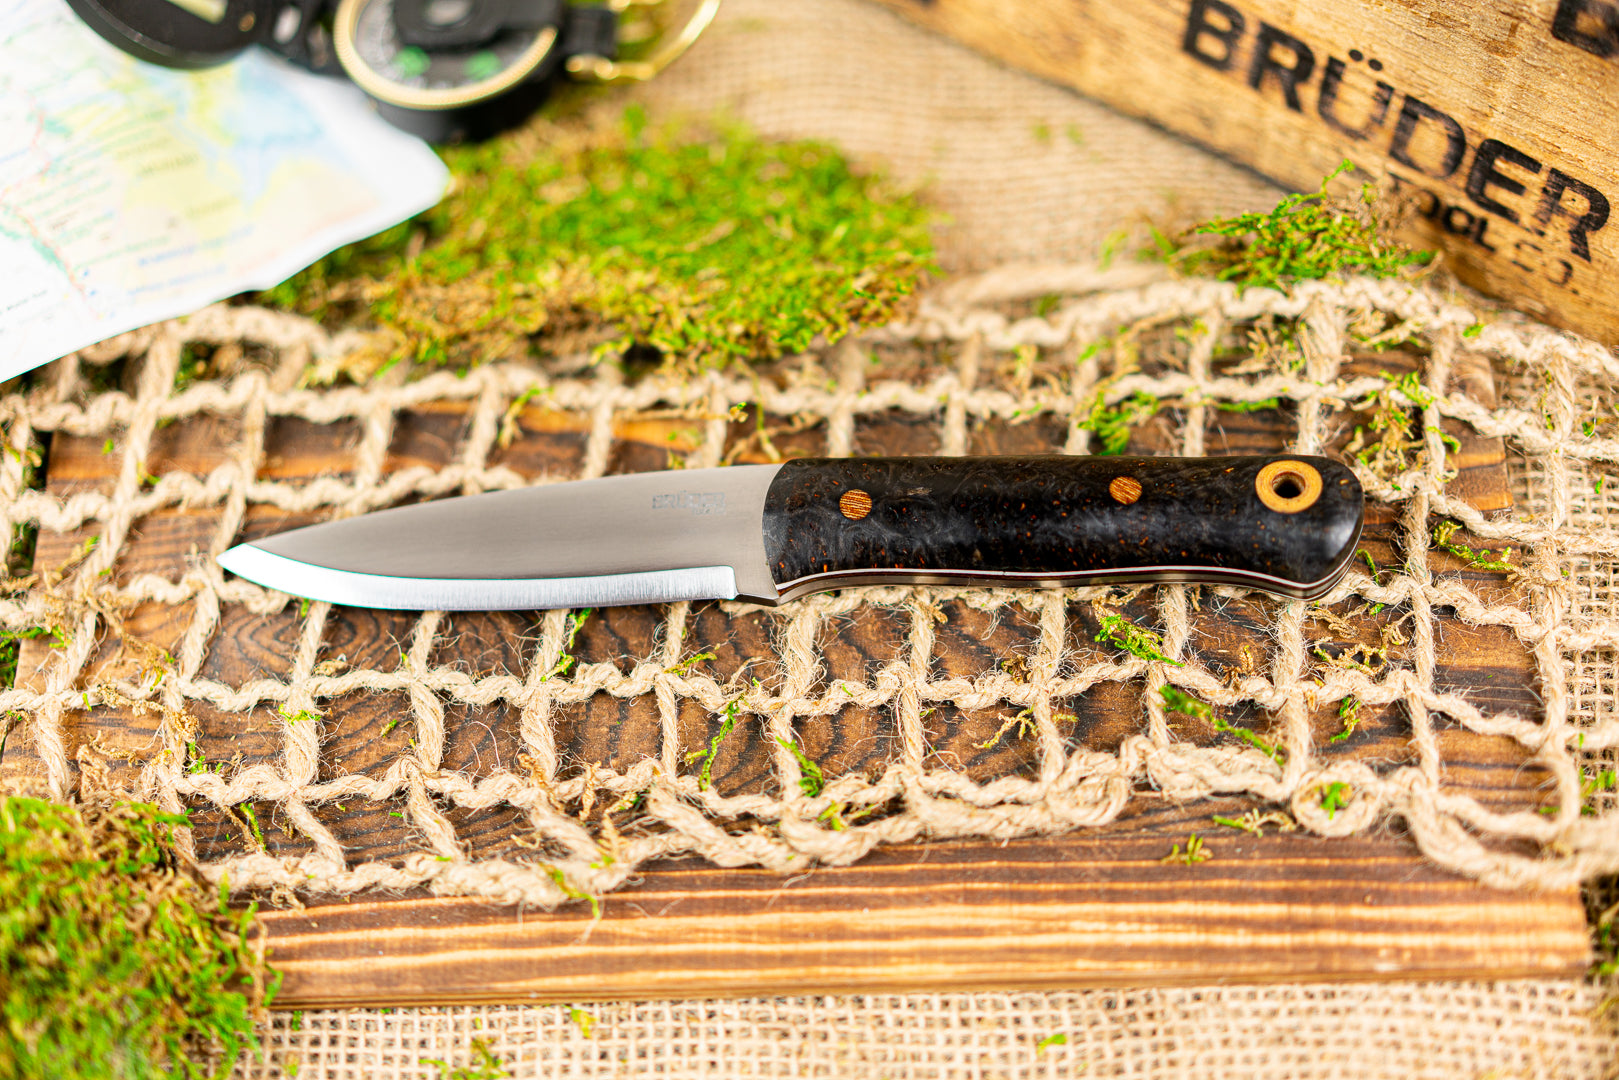 Brüder Alger Bushcraft Knife - Black/Copper Specks - Custom Dyed Burl